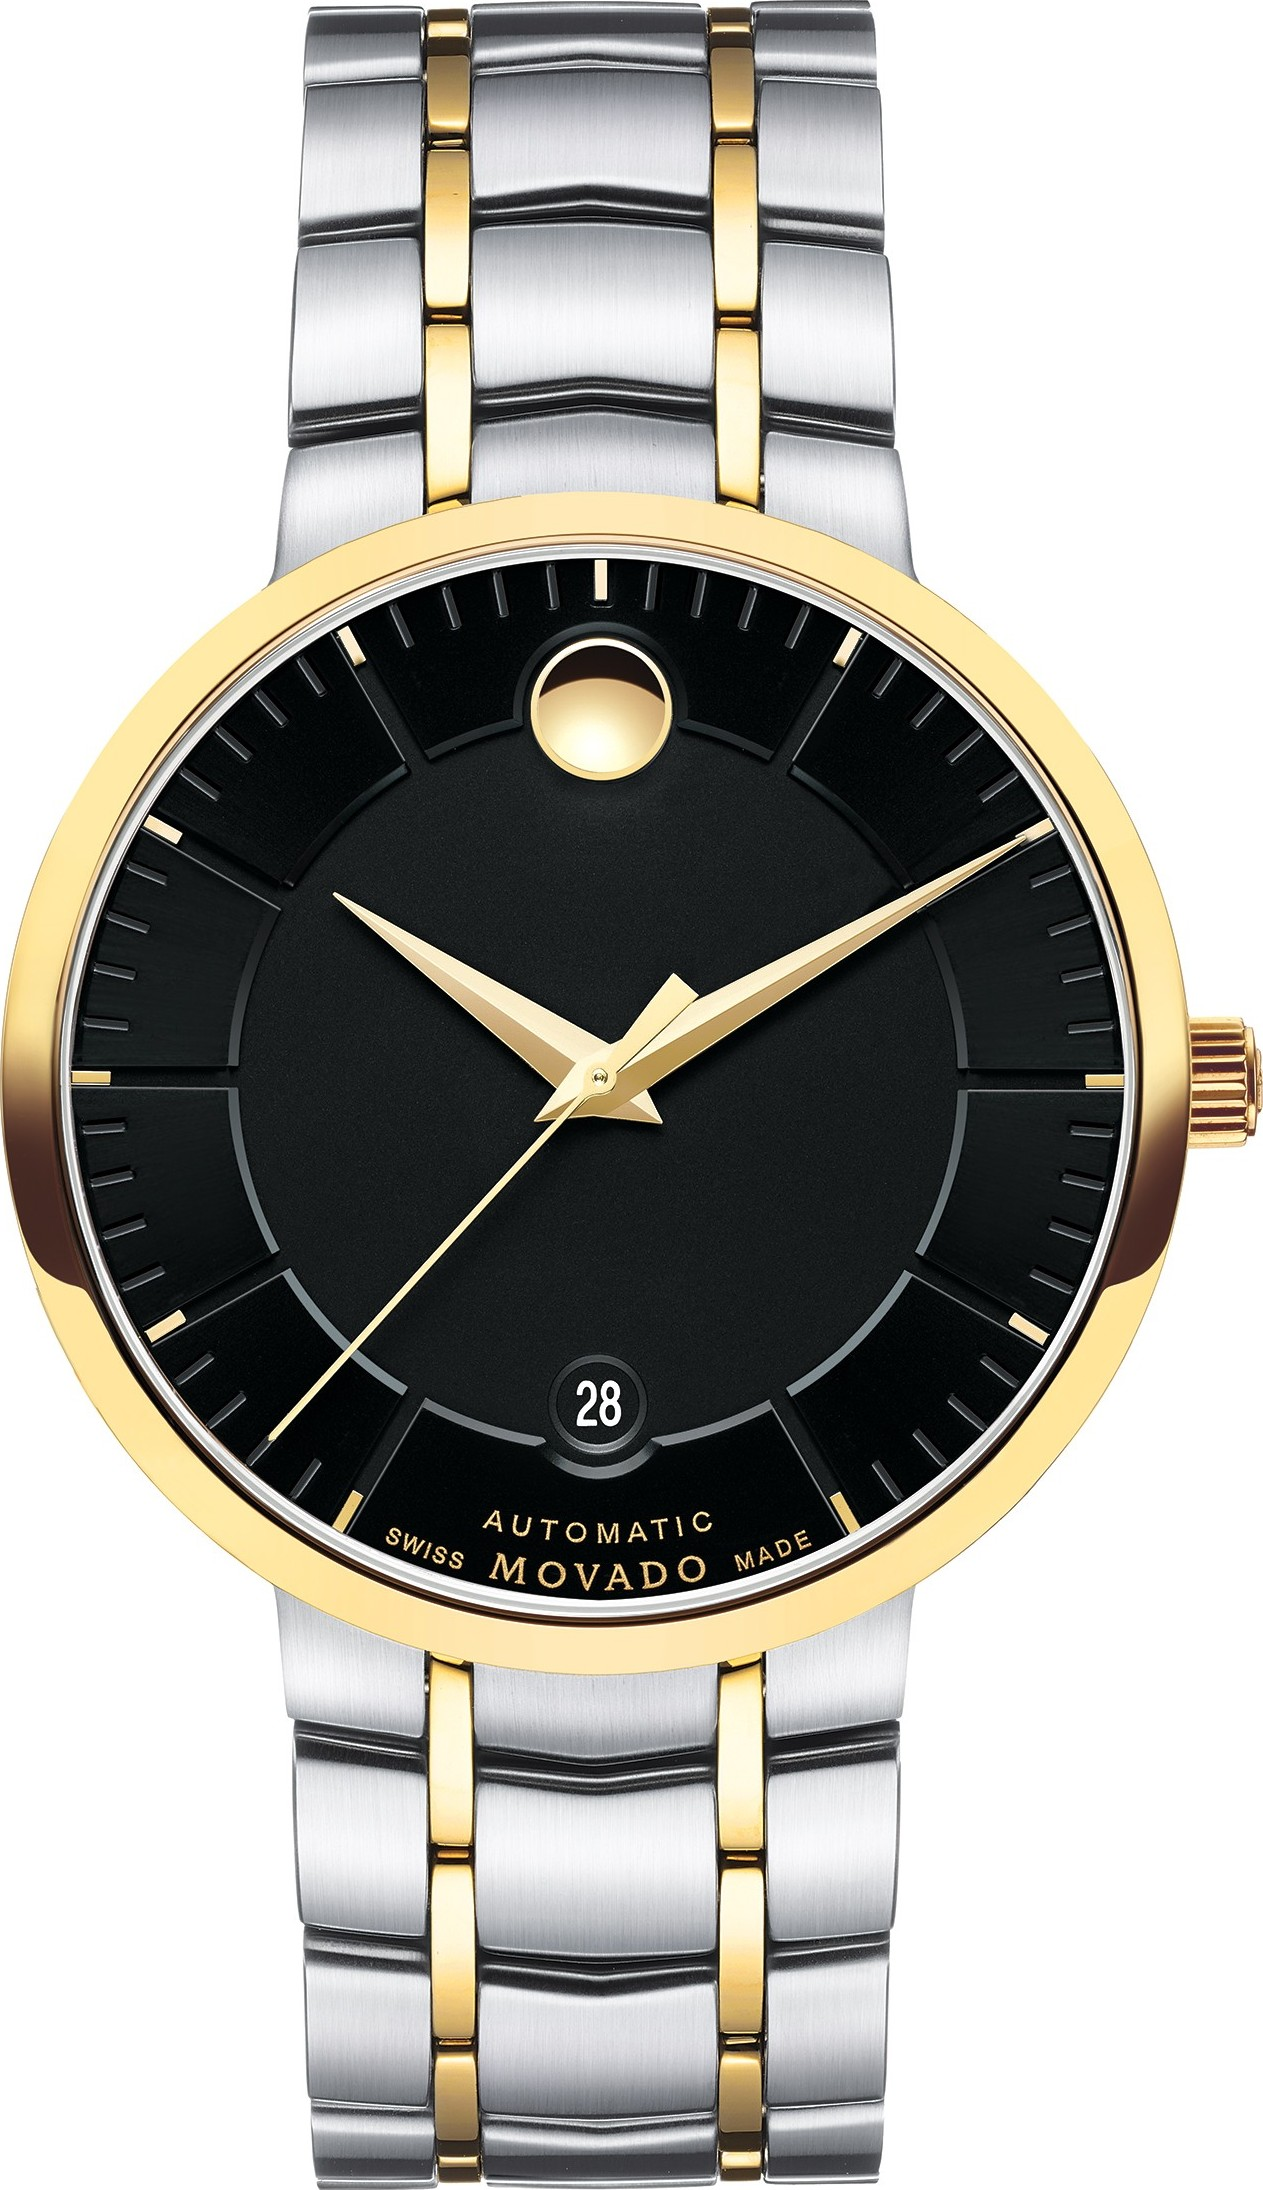 MOVADO 1881 AUTOMATIC Black Men's Watch 39.5mm